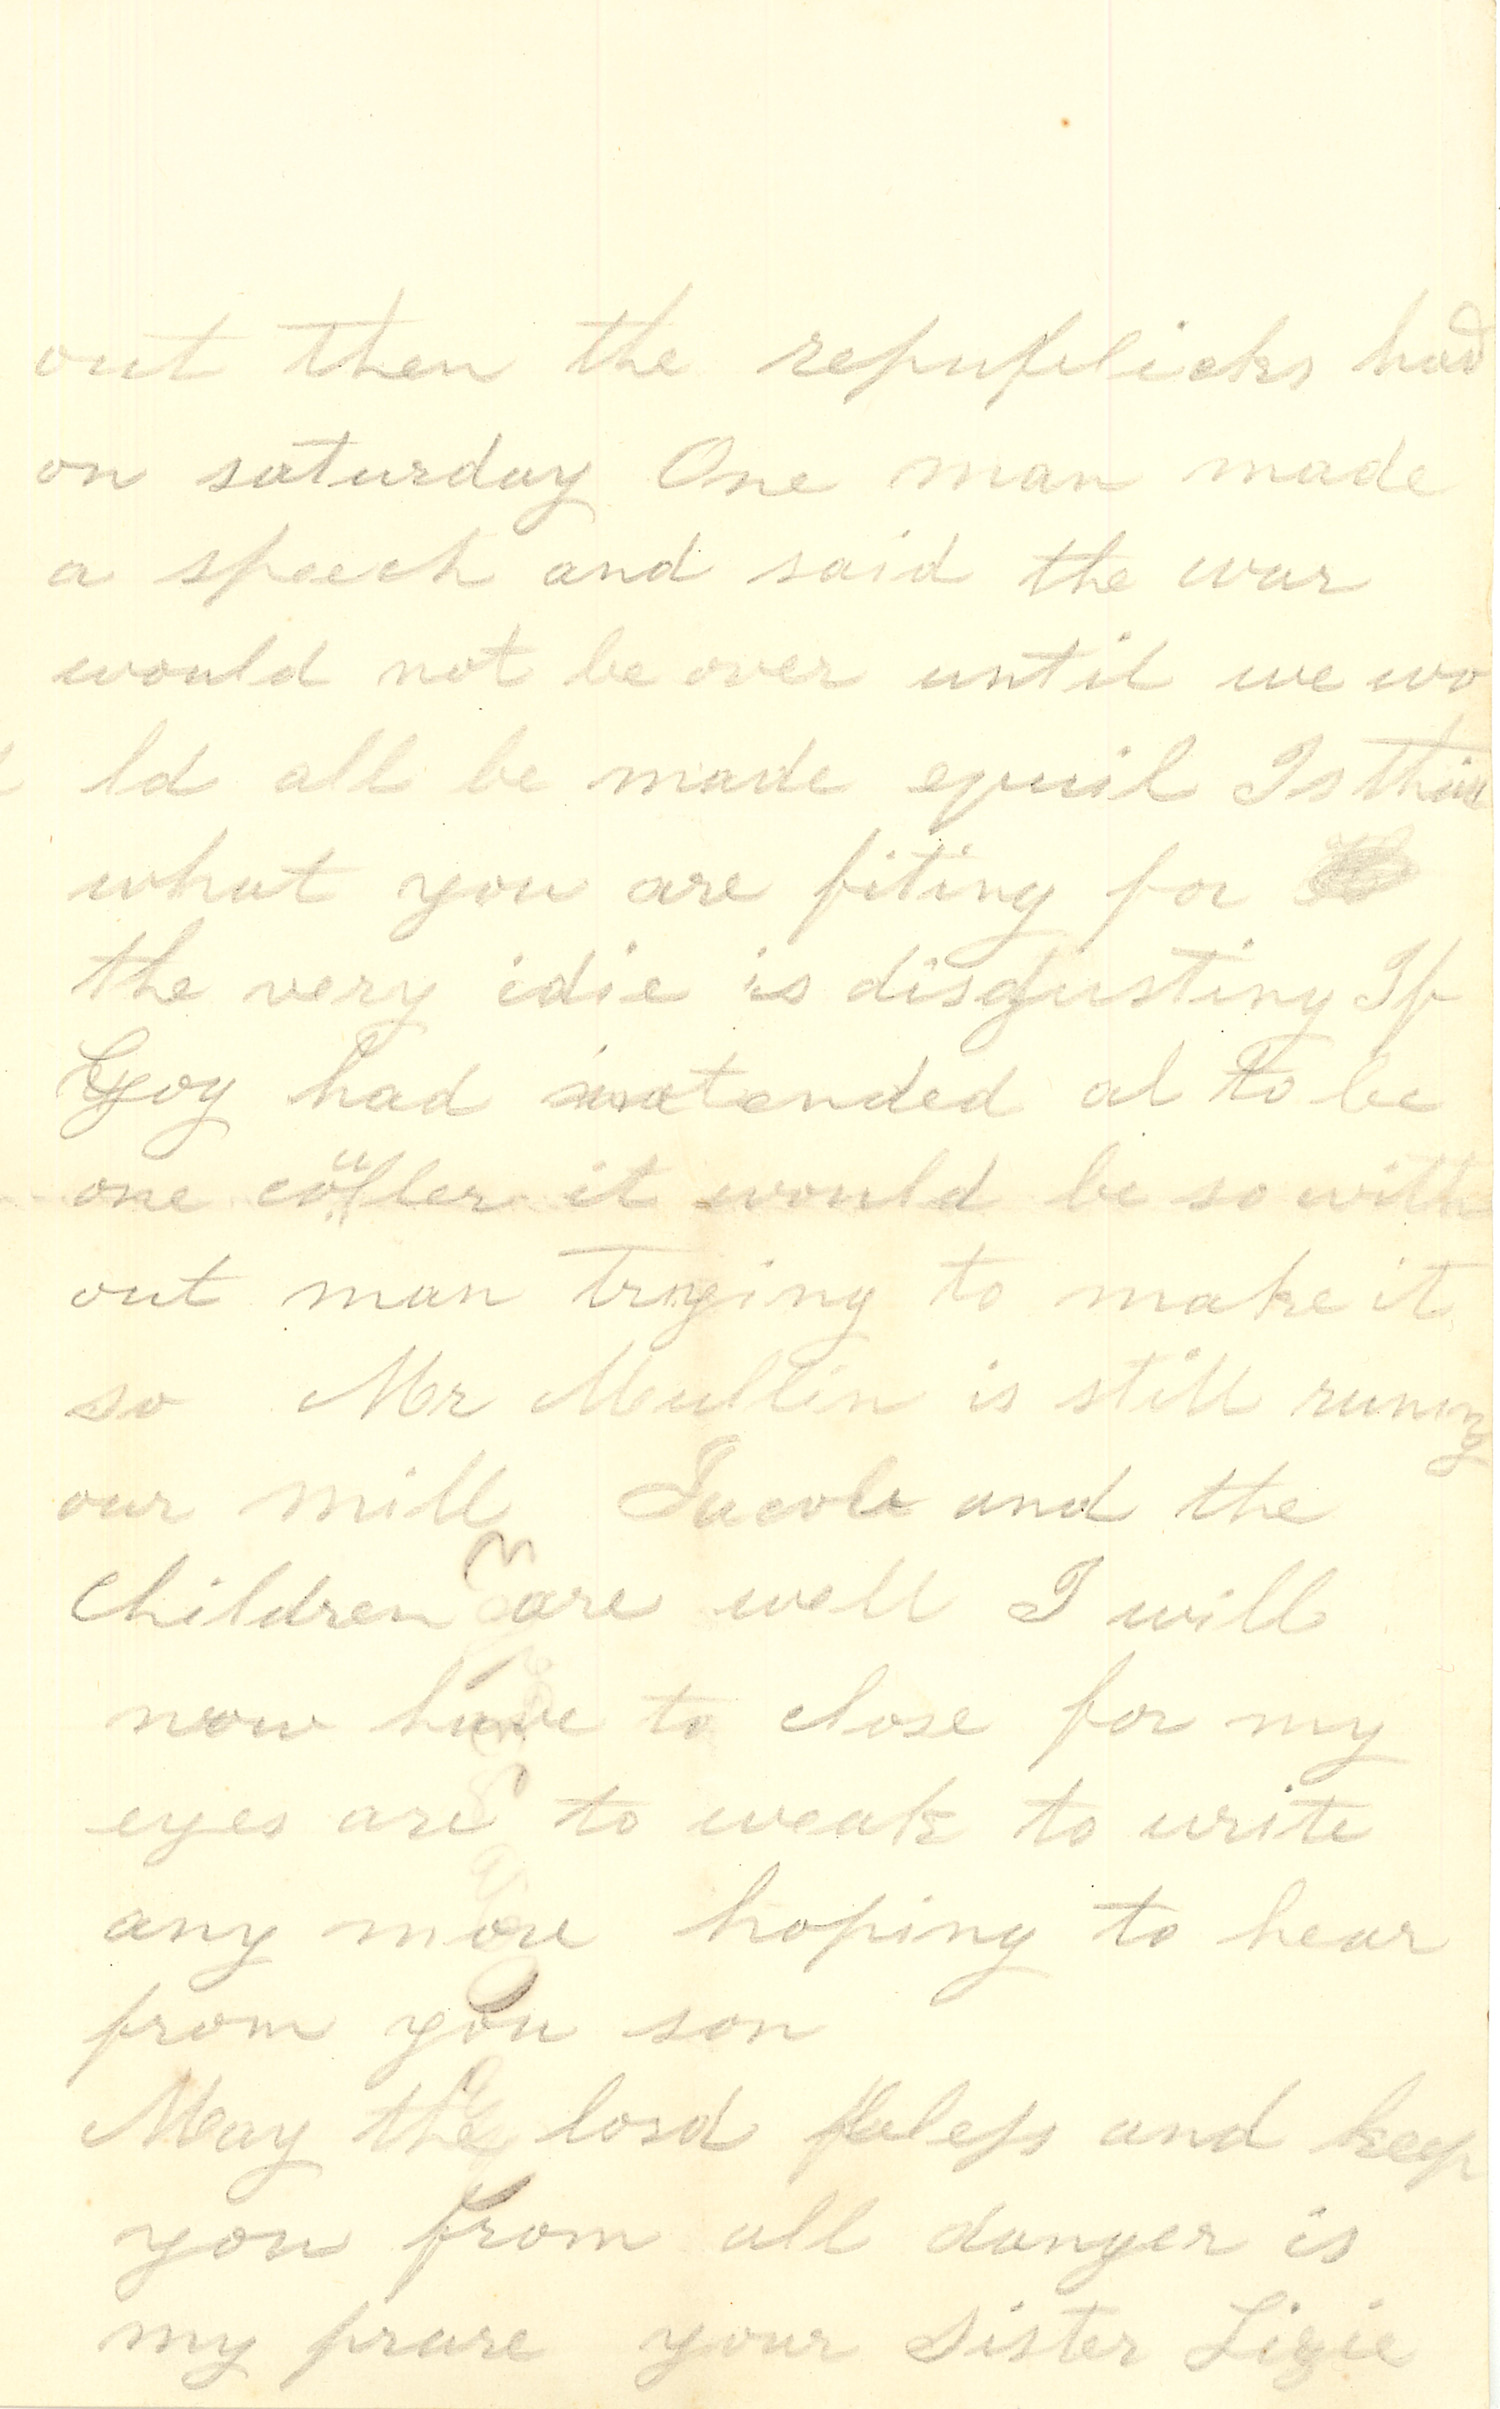 Joseph Culver Letter, October 23, 1863, Letter 2, Page 3